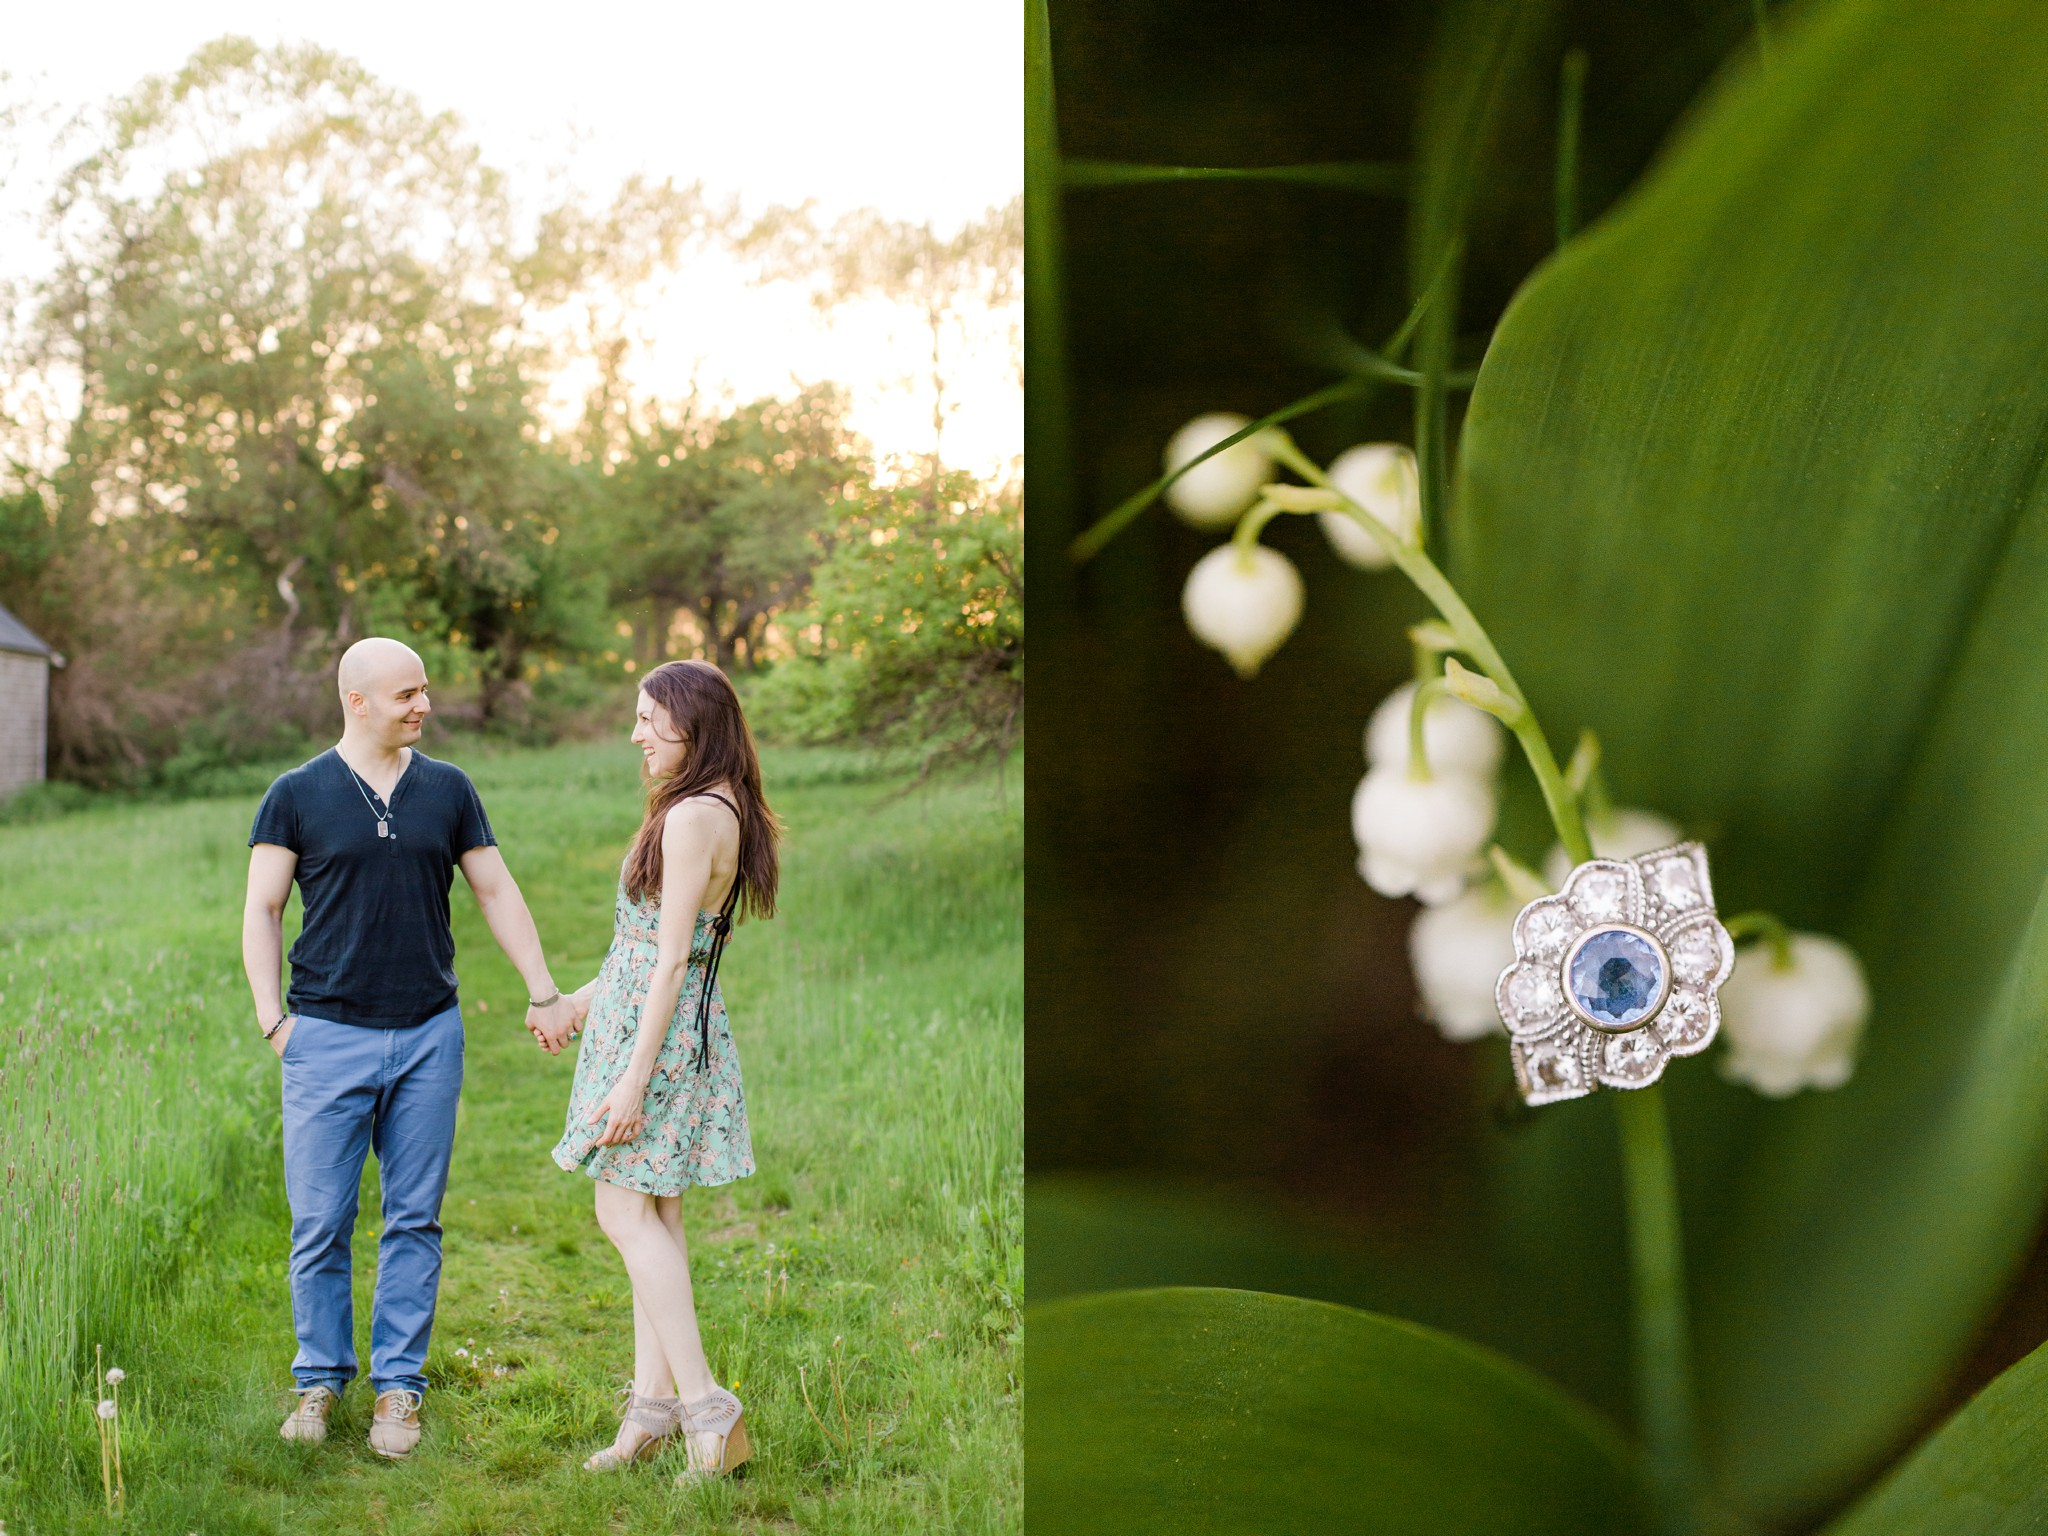 deborah_zoe_photography_engagement_session_0095.JPG